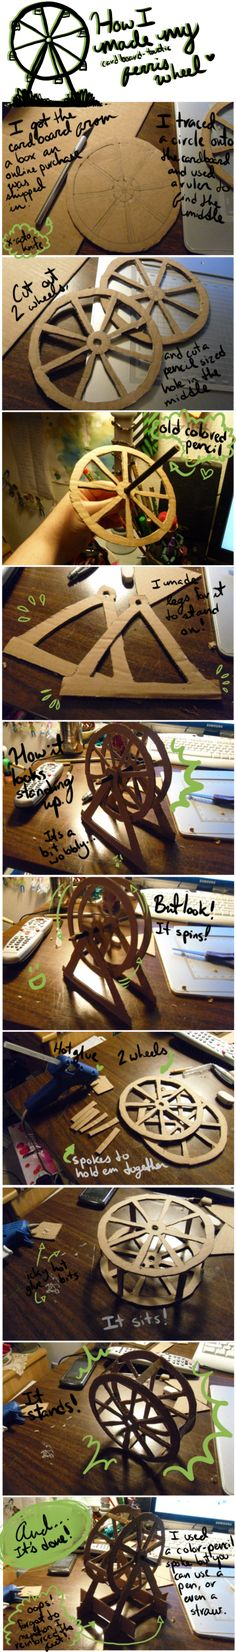 Cardboard Ferris Wheel by ~CrimsonPearls on deviantART